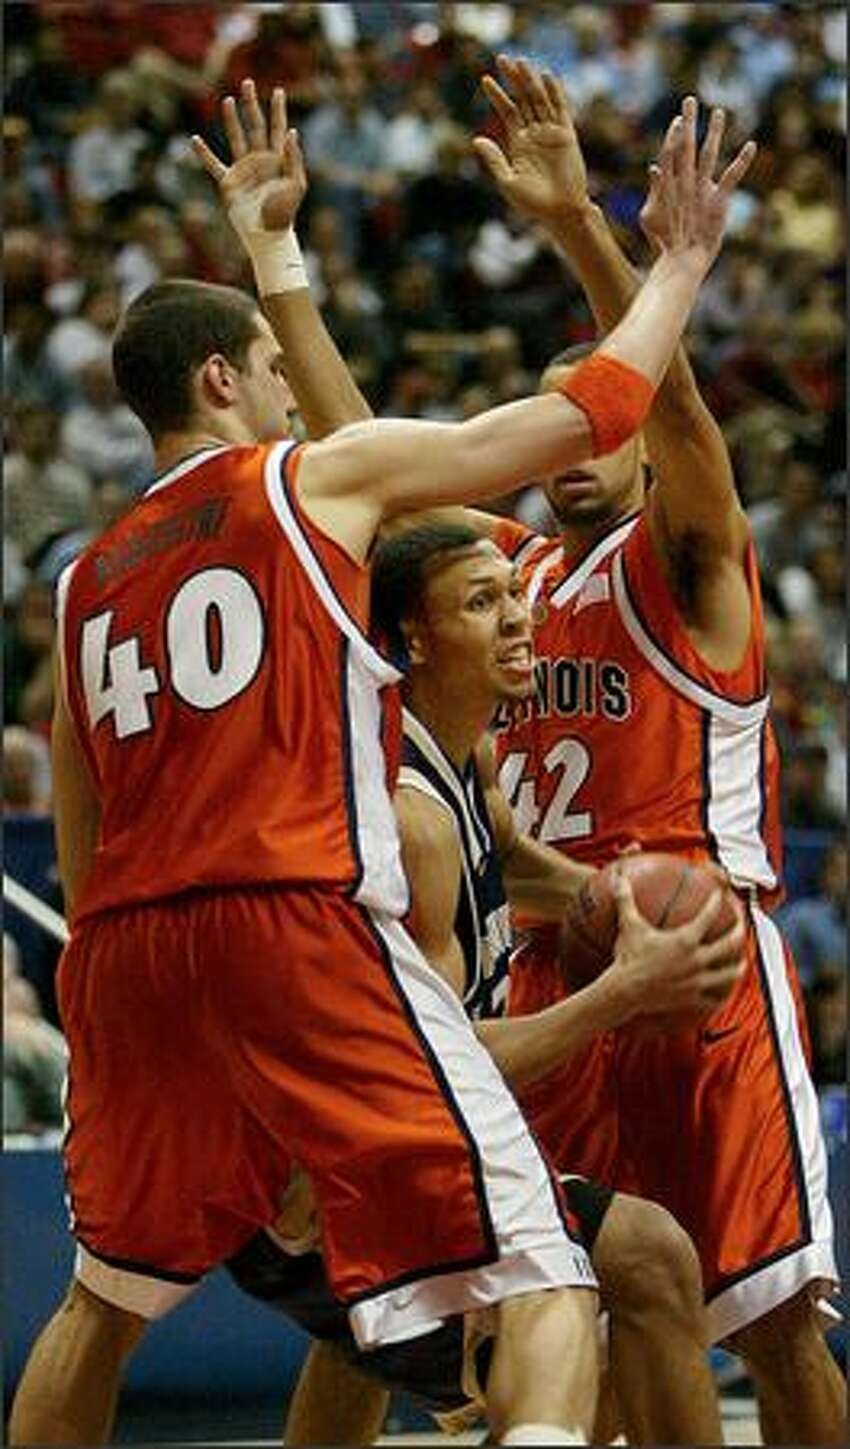 UW's Brandon Roy drives between Illinois' James Augustine (40) and Brian Randle to score two of his game high 21 points, and tie the score at 60 late in the second half.